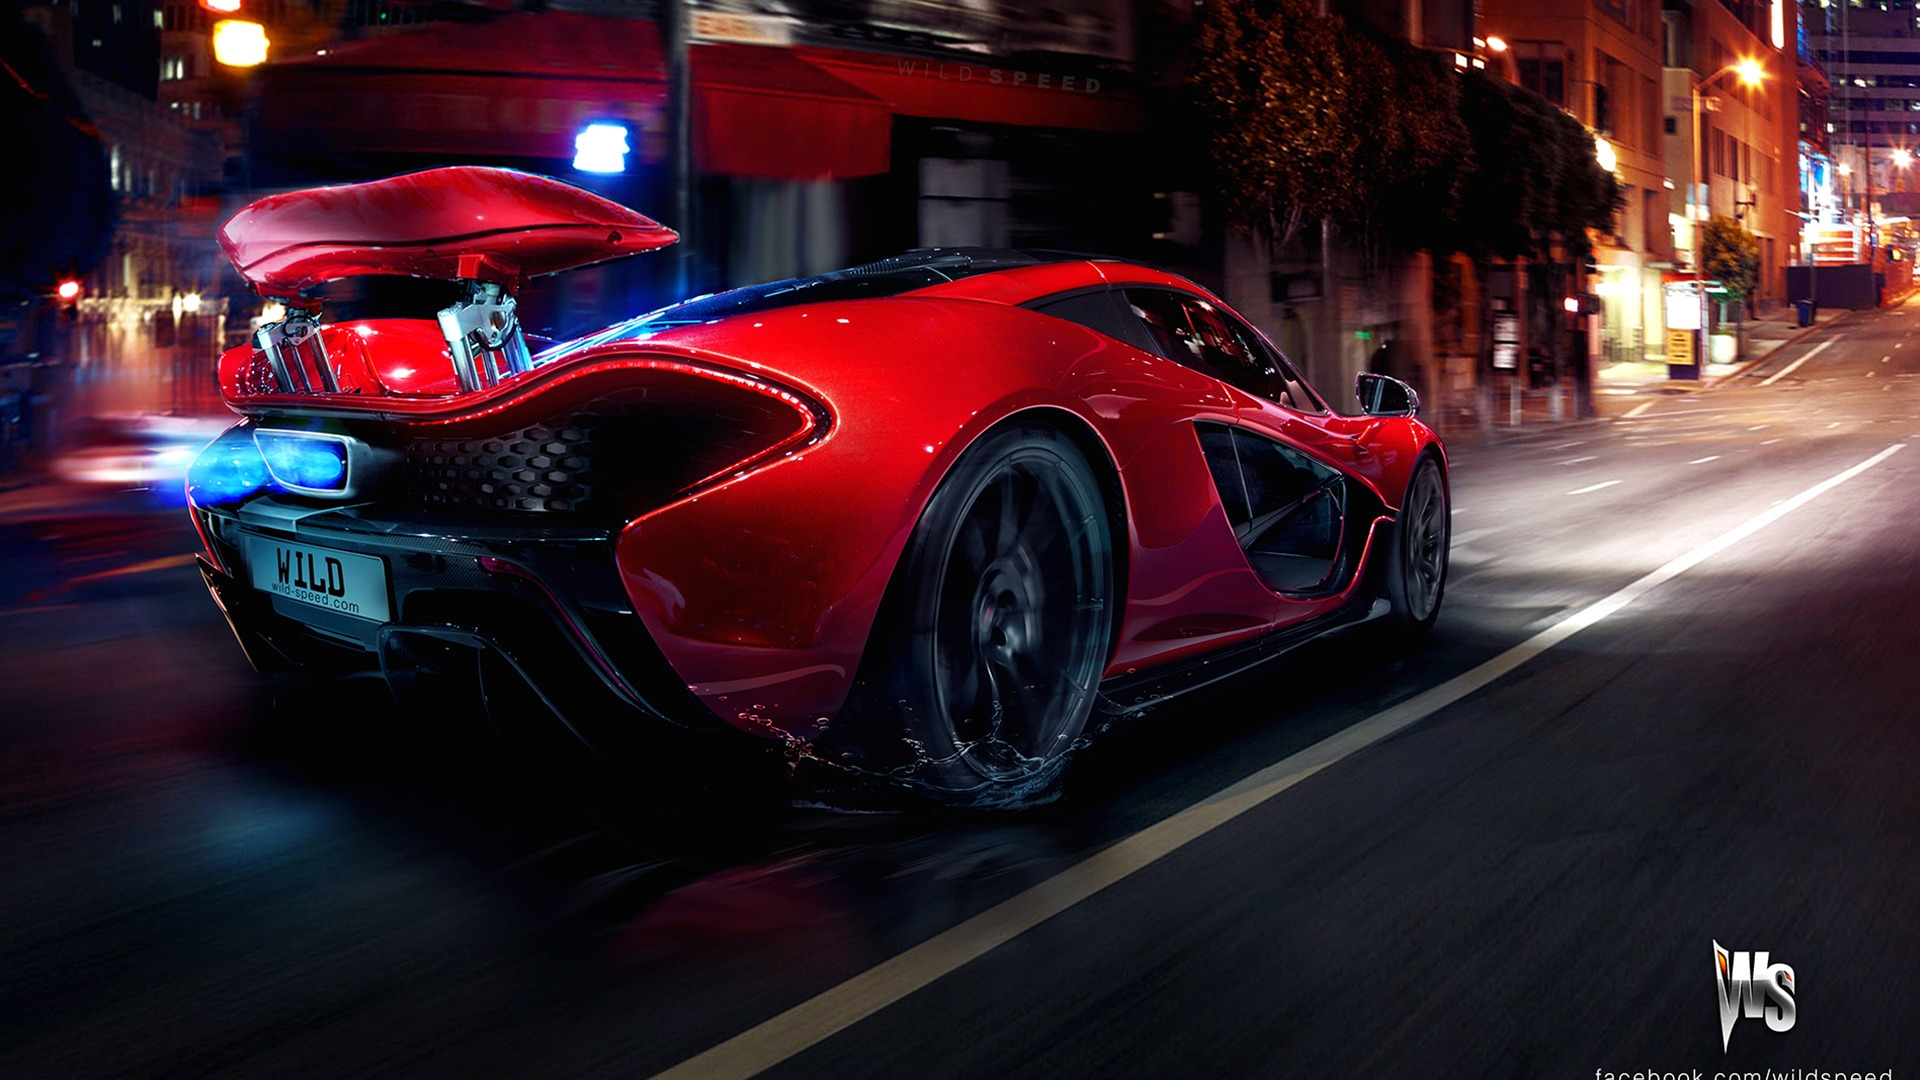 Mclaren p1 super sportscar concept desktop wallpaper